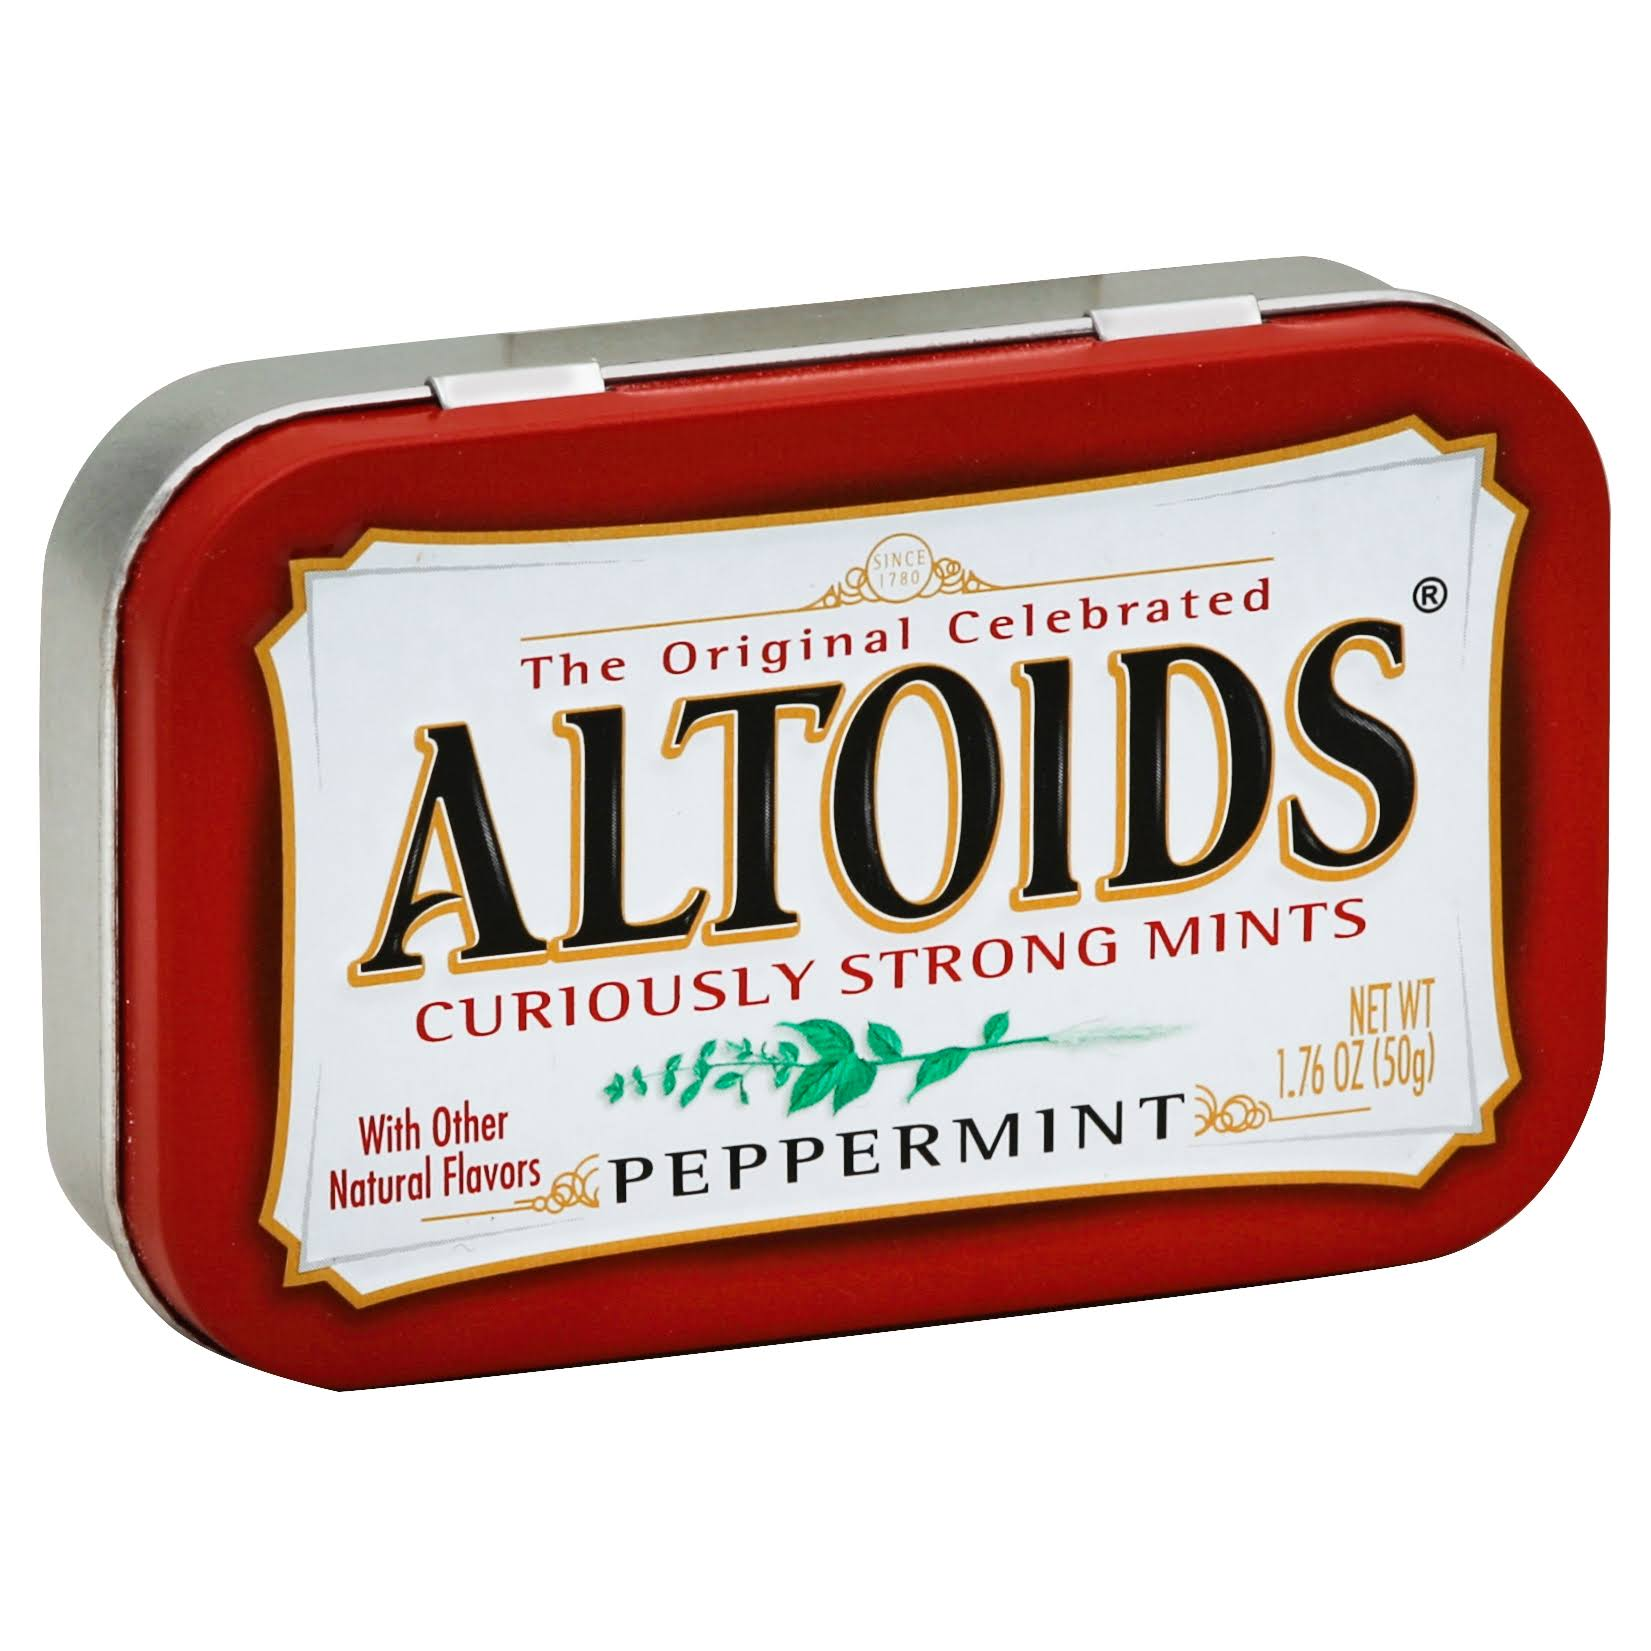 Wrigley's Altoids Peppermint Mints - 50g